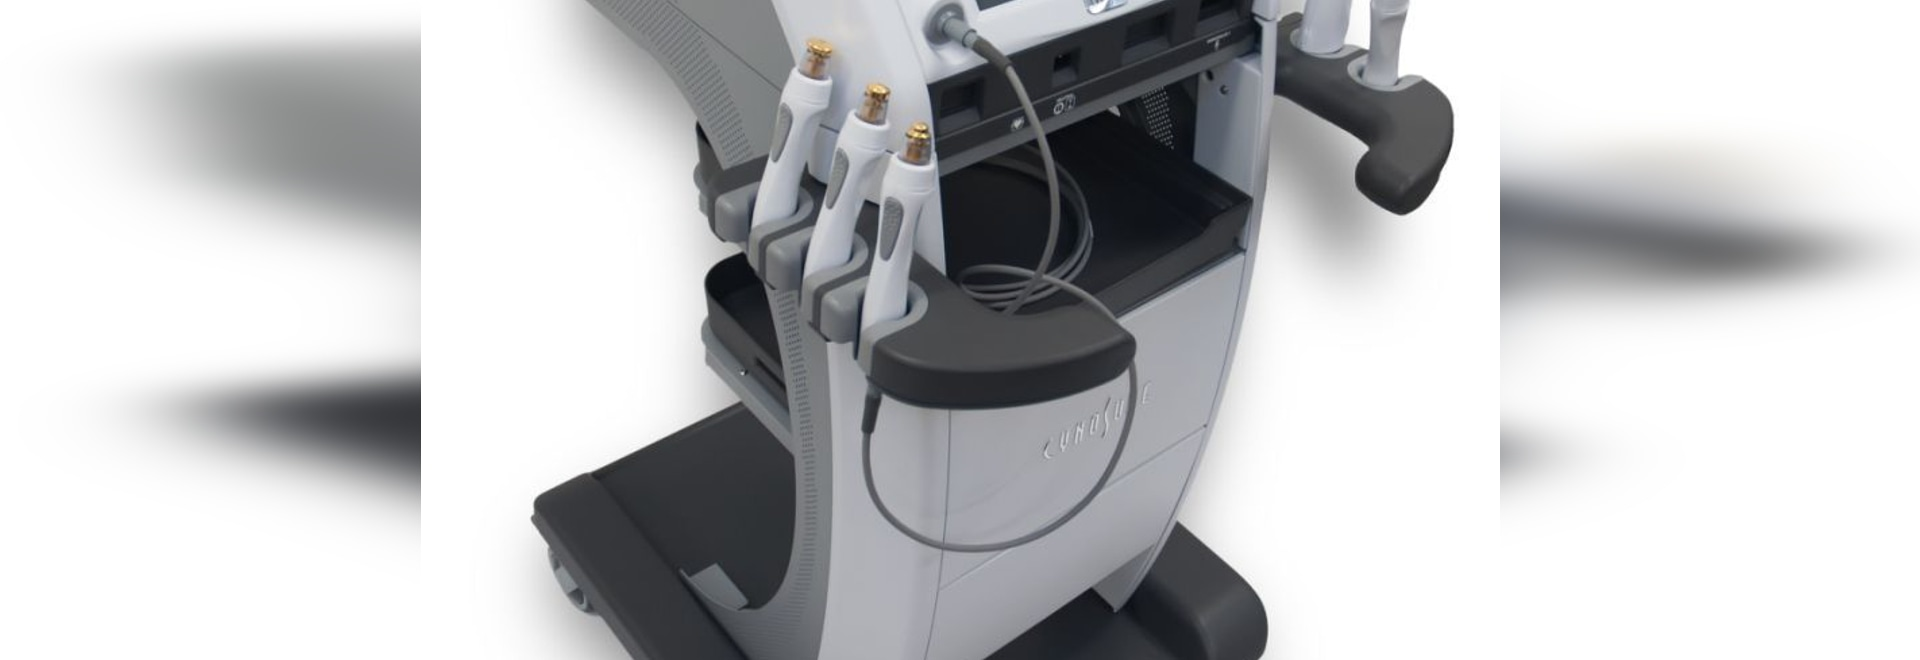 Cynosure TempSure RF Platform Now Available for Aesthetic Procedures in Plastic Surgery, Dermatology, Gynecology